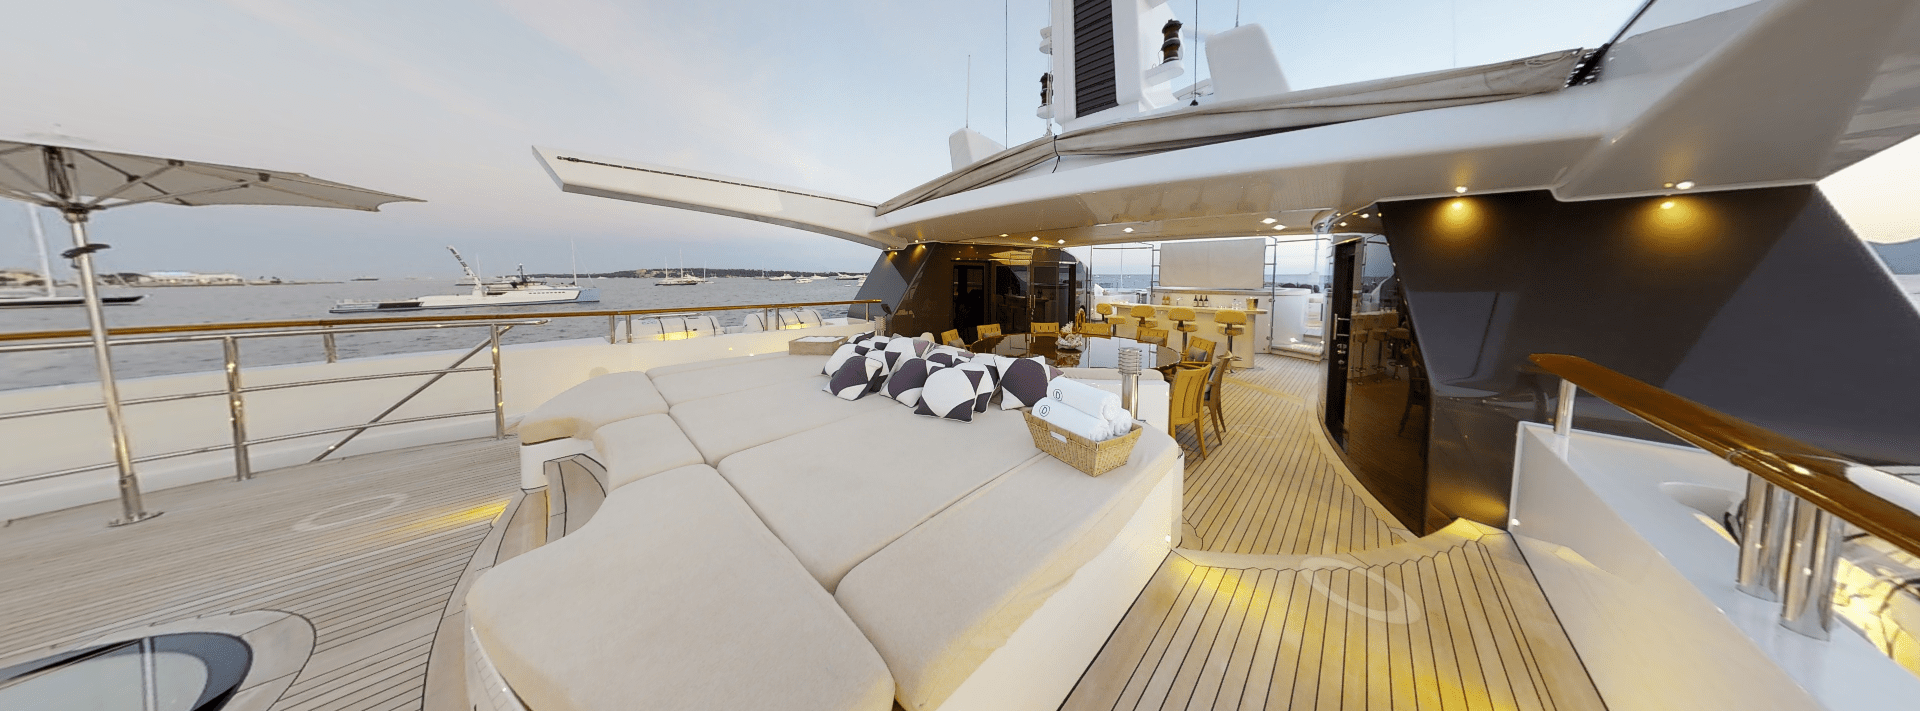 3D Virtual Tours - Yachts and more